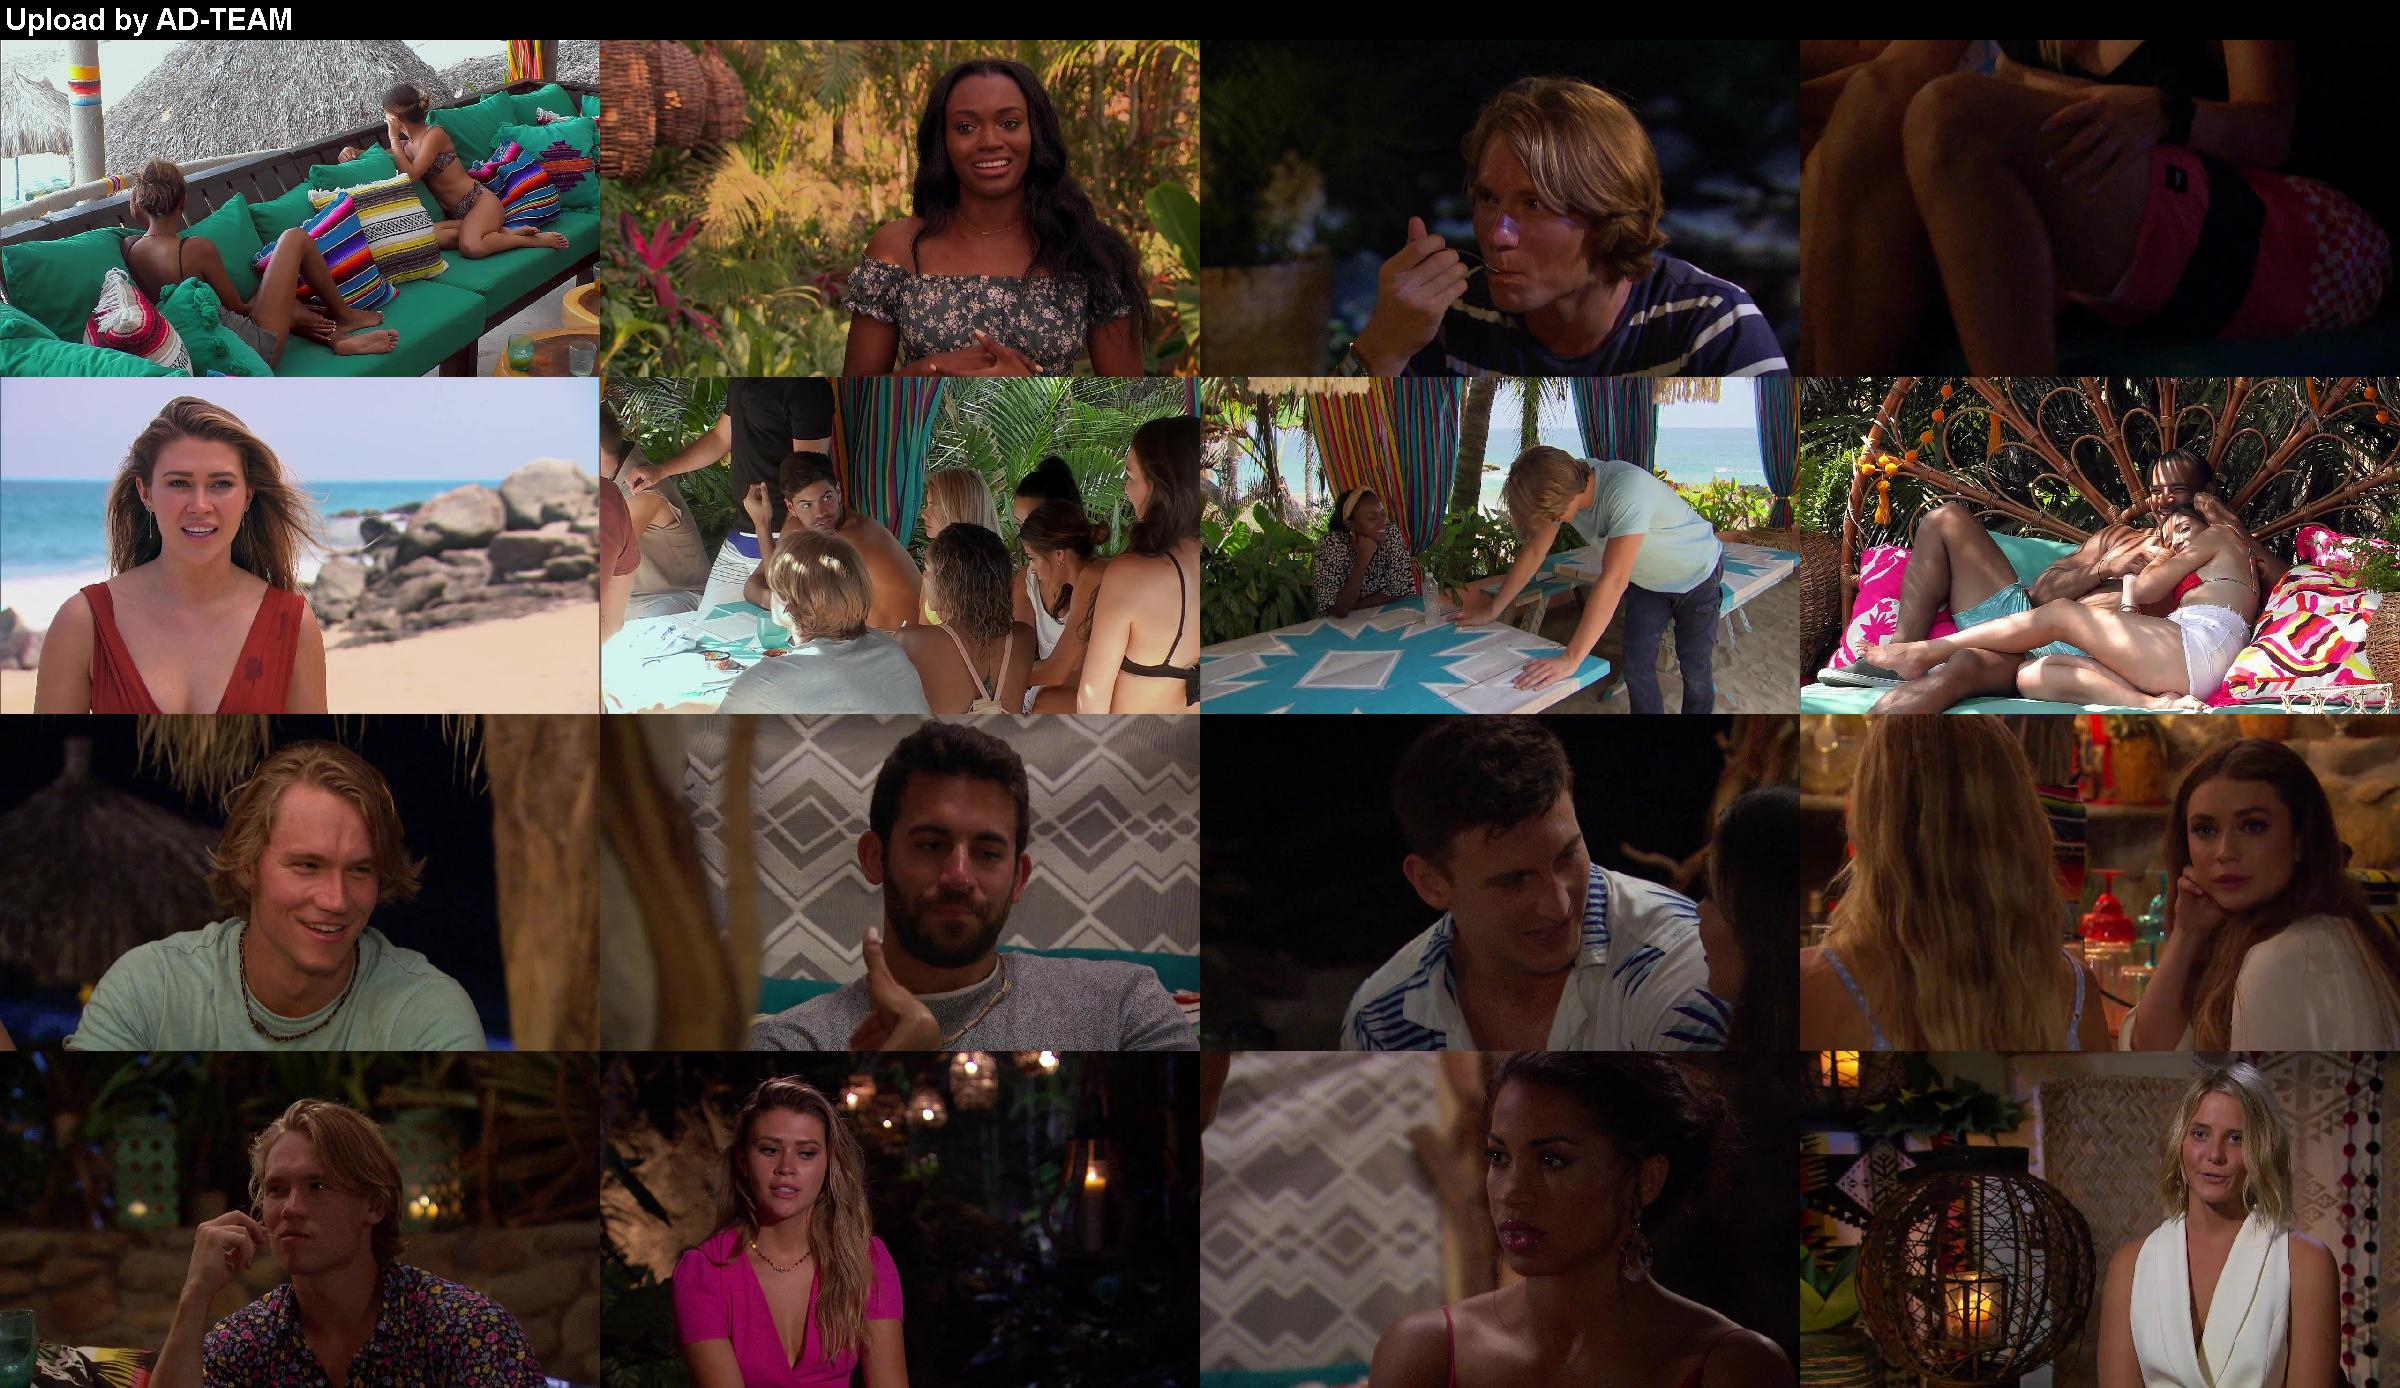 Bachelor In Paradise S06e07 720p Hulu Web-dl Ddp5 1 H 264-ntb